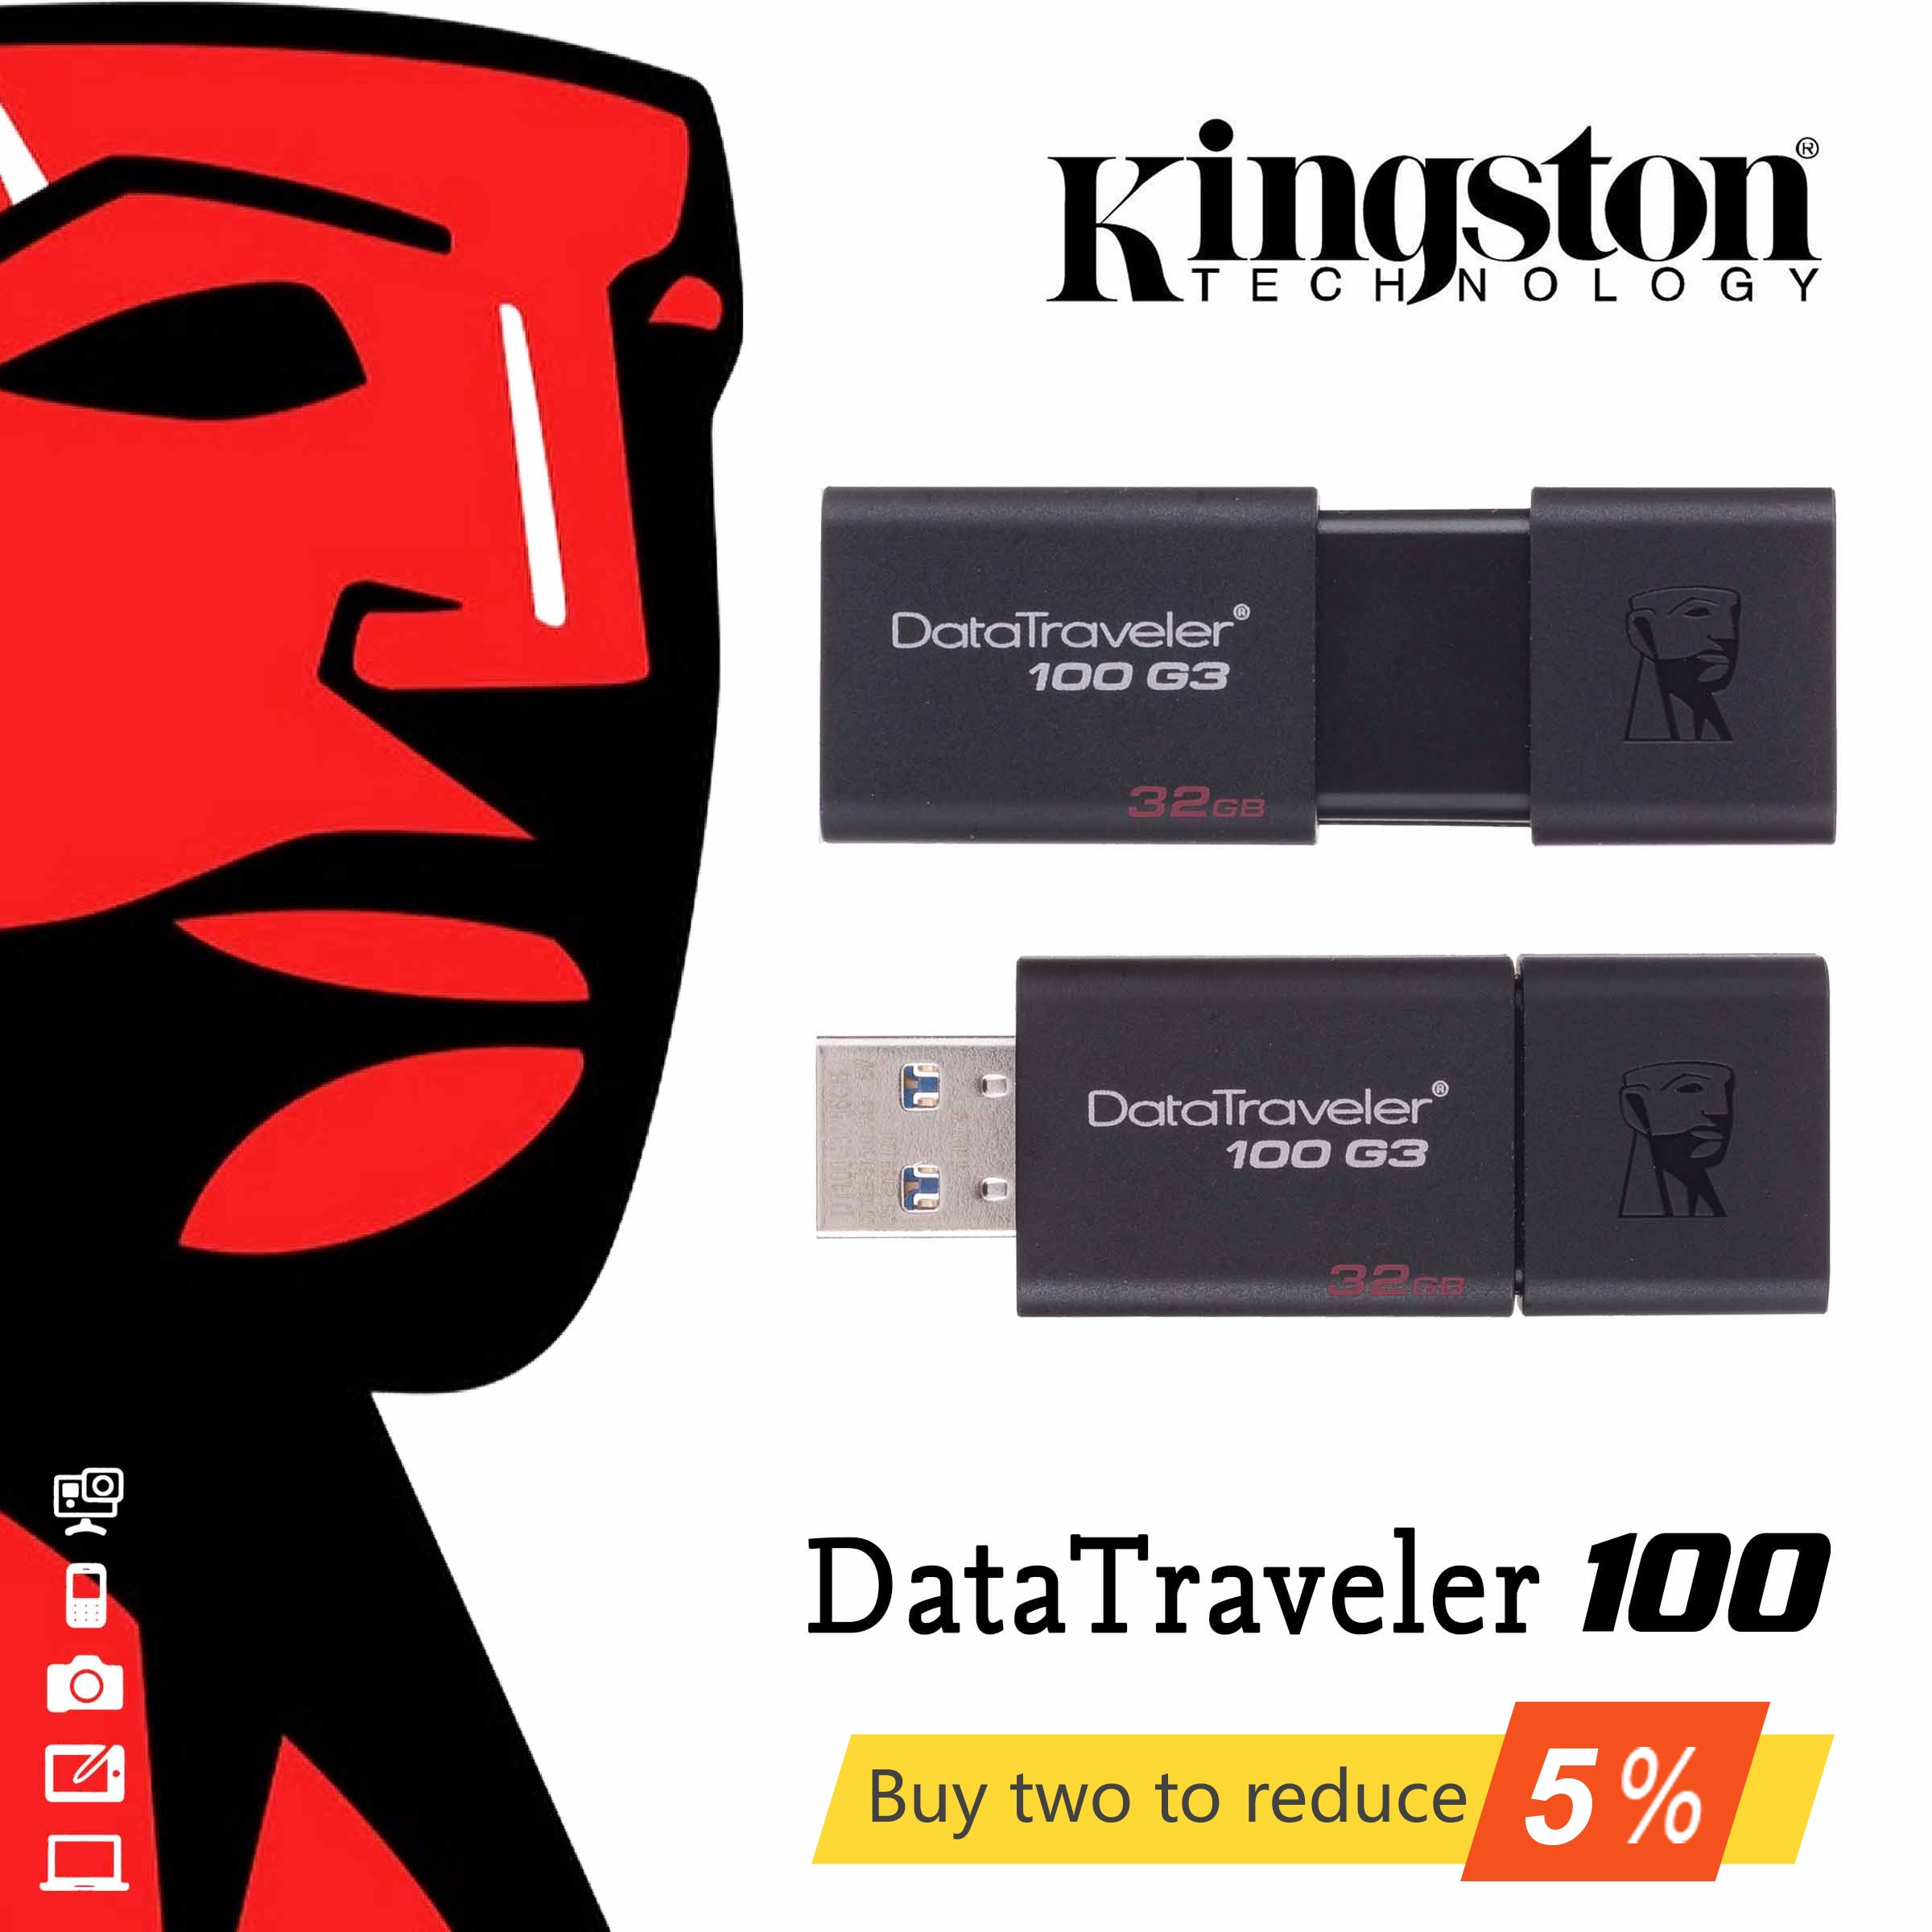 Original <font><b>Kingston</b></font> <font><b>USB</b></font> 3.0 Pen Drive 16 GB 32 GB 64 GB 128 GB <font><b>USB</b></font> Flash Geistige Stick Stick Ring Speicher flash Memoria <font><b>USB</b></font> DT100G3 image